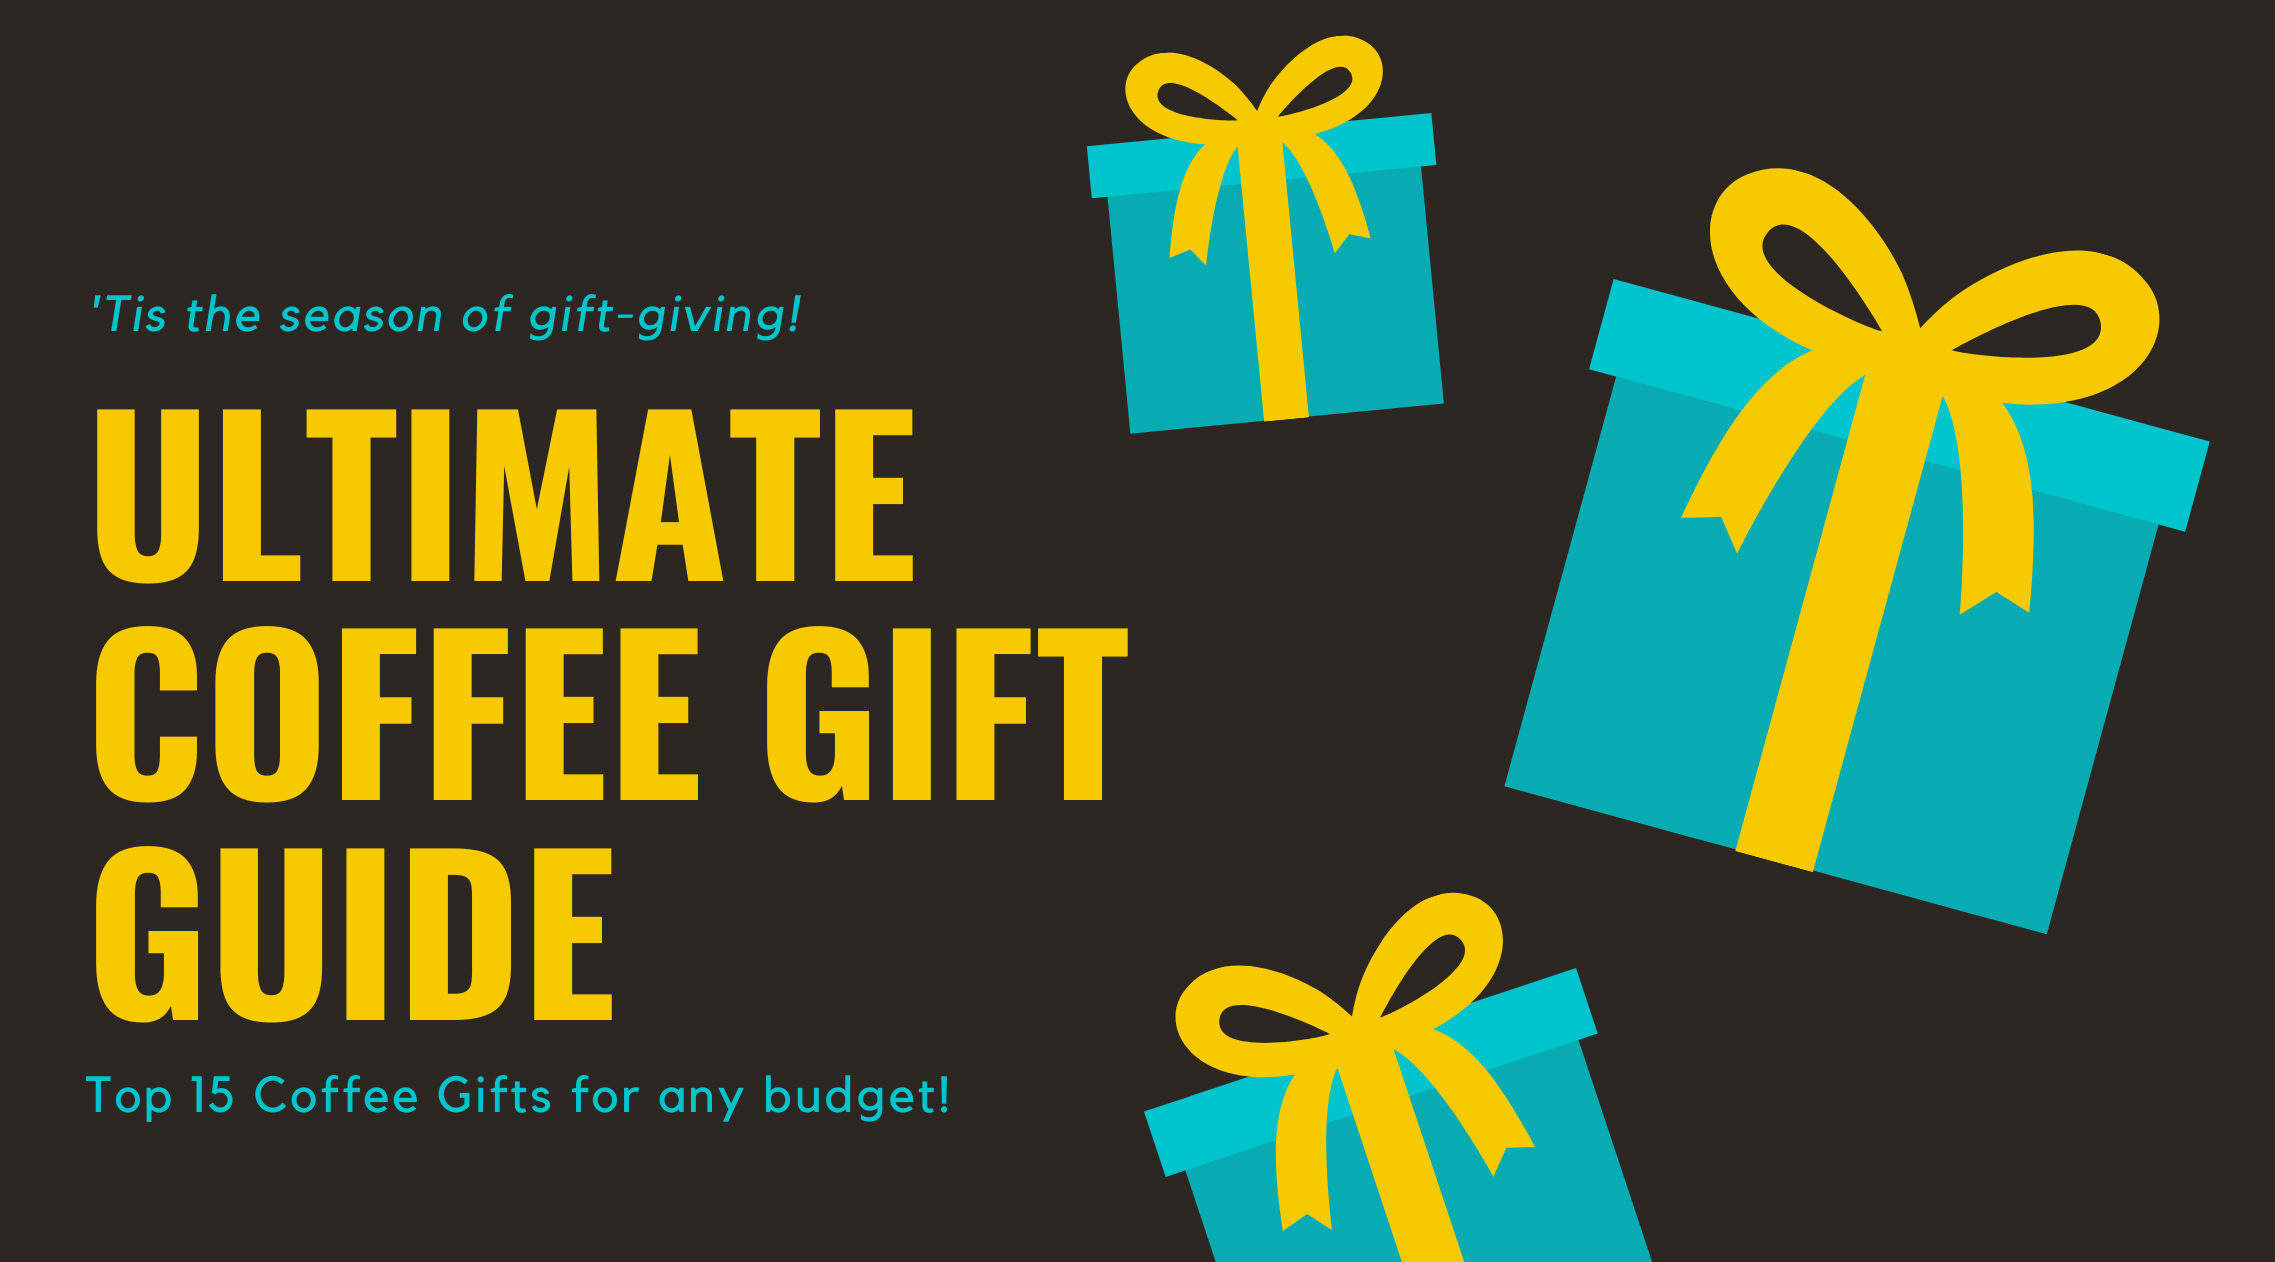 The ultimate coffee gift giving guide